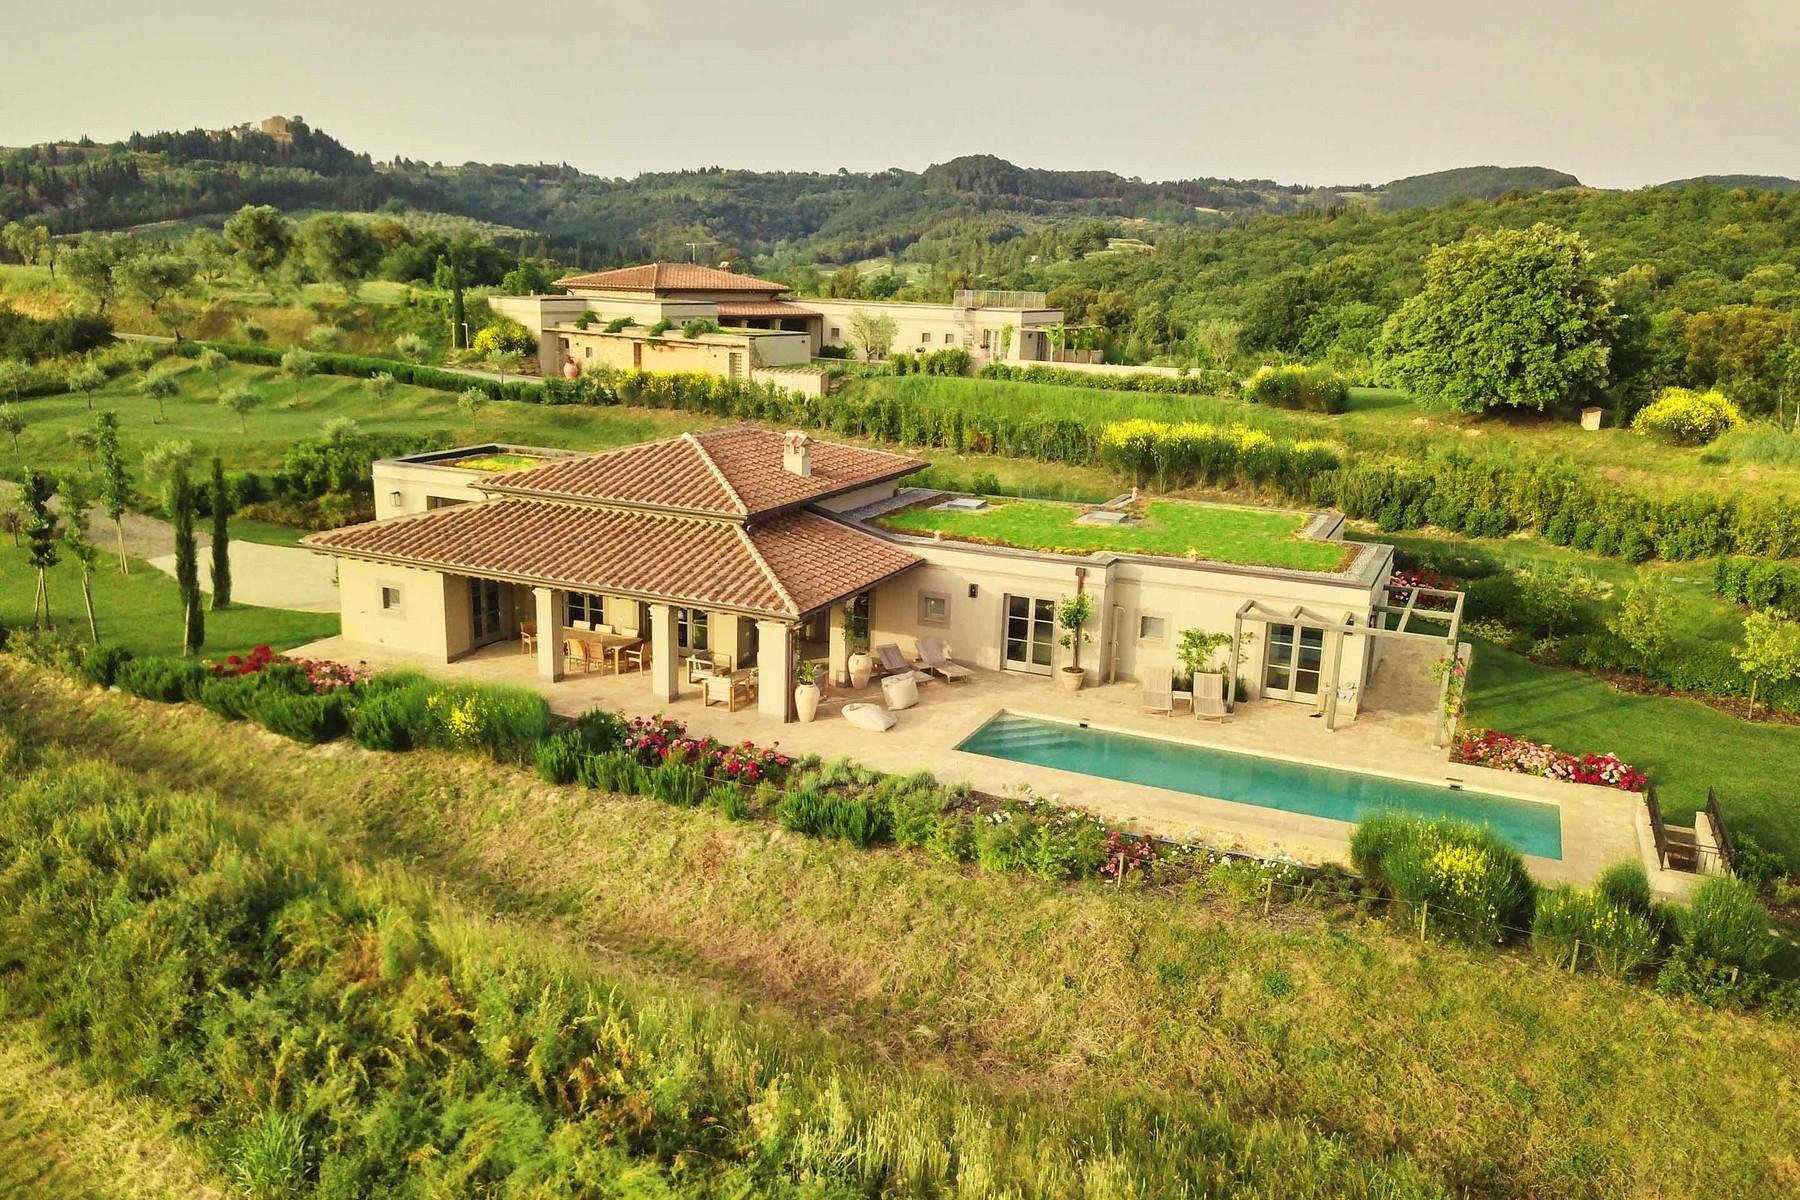 Marvellous new build villas in the Tuscan countryside - 1